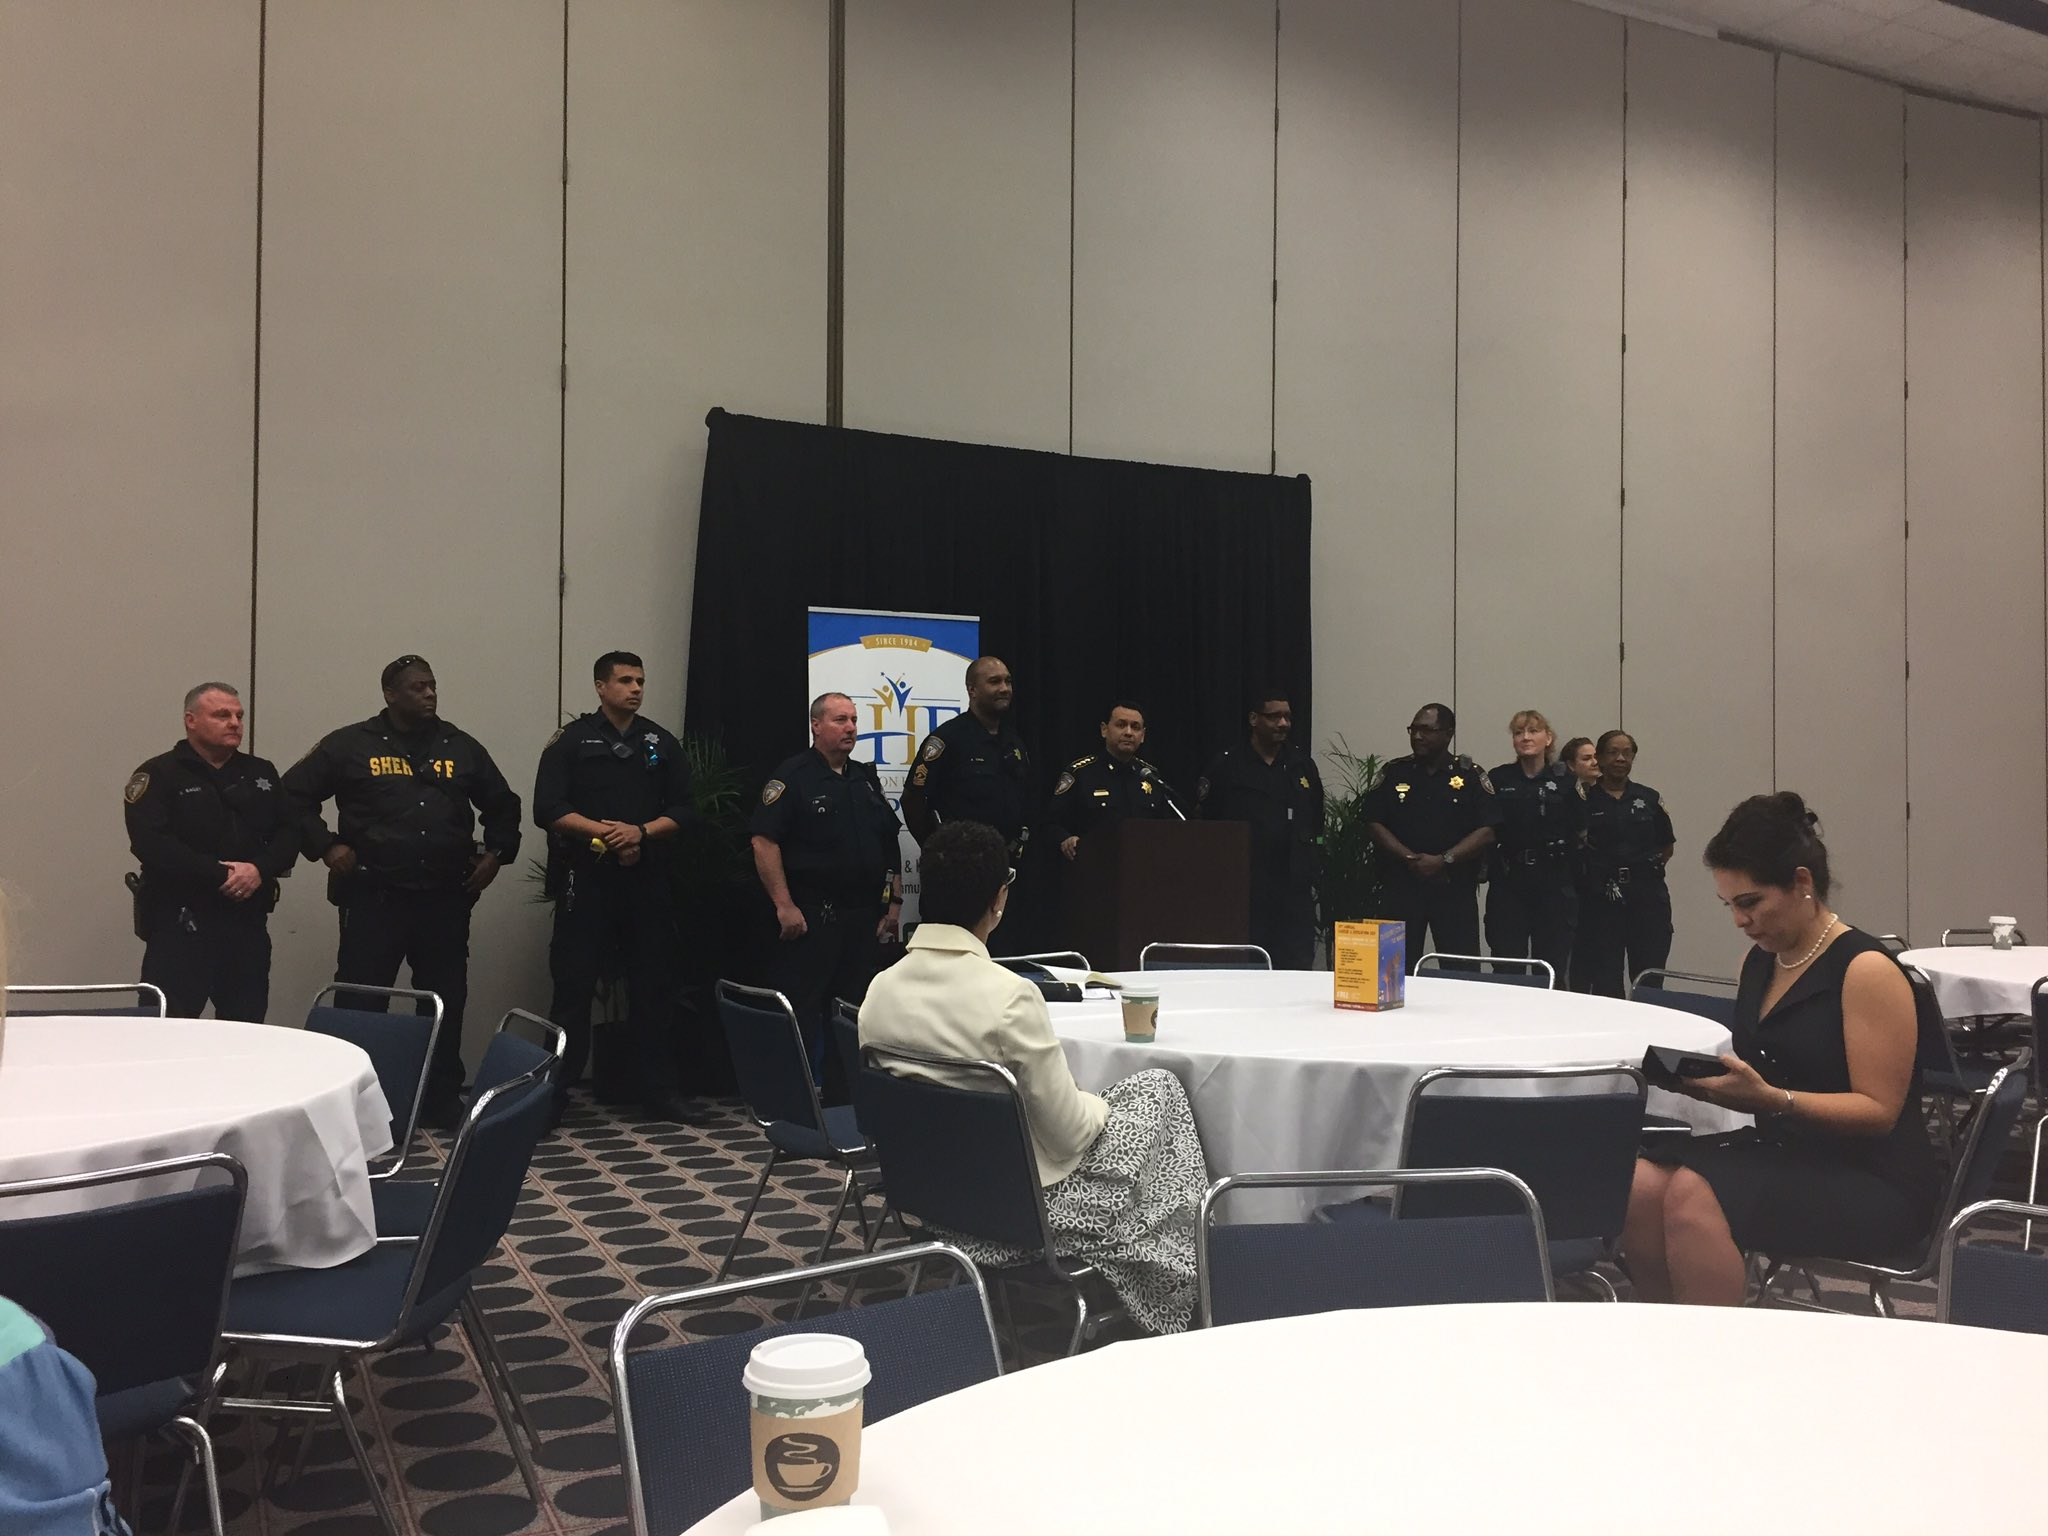 Harris county sheriff dept. well represented at #cedhou #futurehouston https://t.co/pLY9EsDyXB